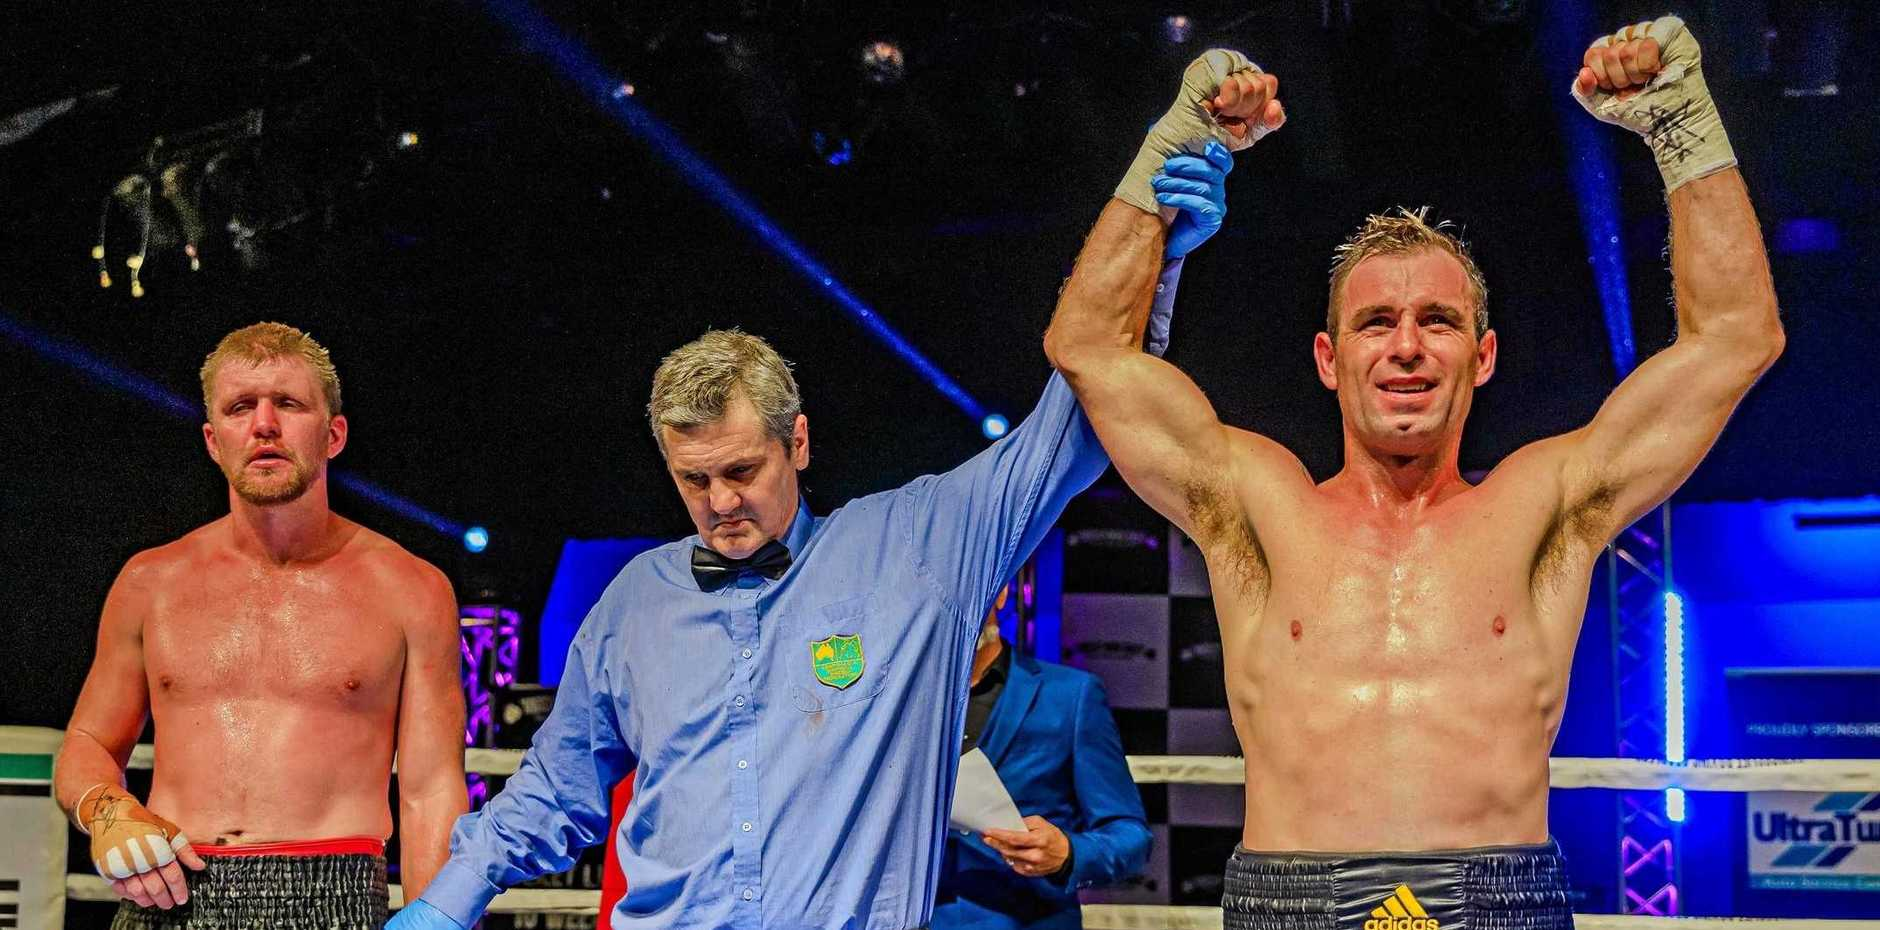 Adam Champ brutal victory set up opportunities for local fighter